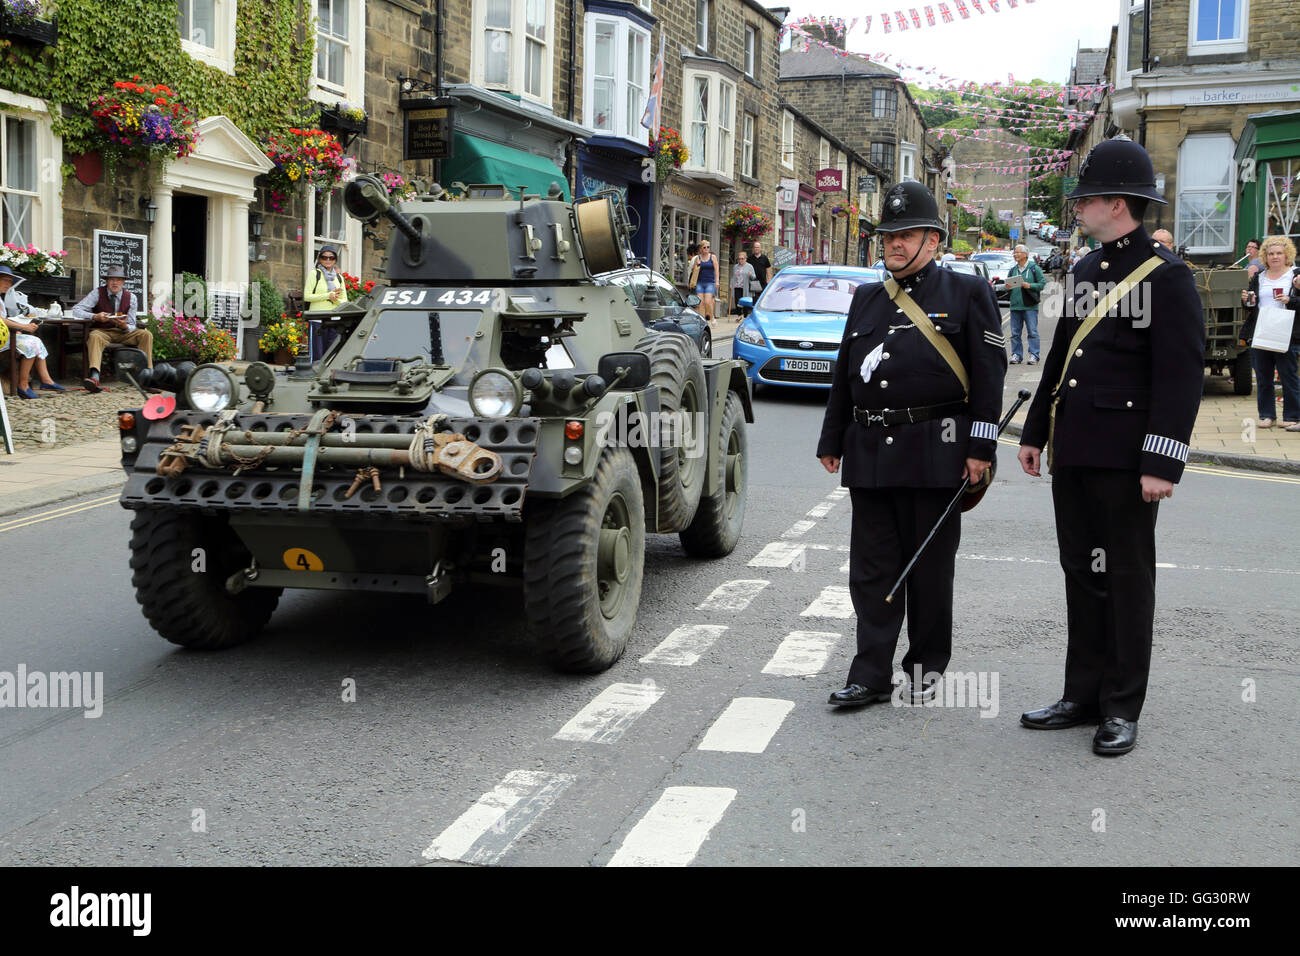 Armoured car and policemen as part of the 1940s weekend in High Street, Pateley Bridge, North Yorkshire, England, United Kingdom Stock Photo